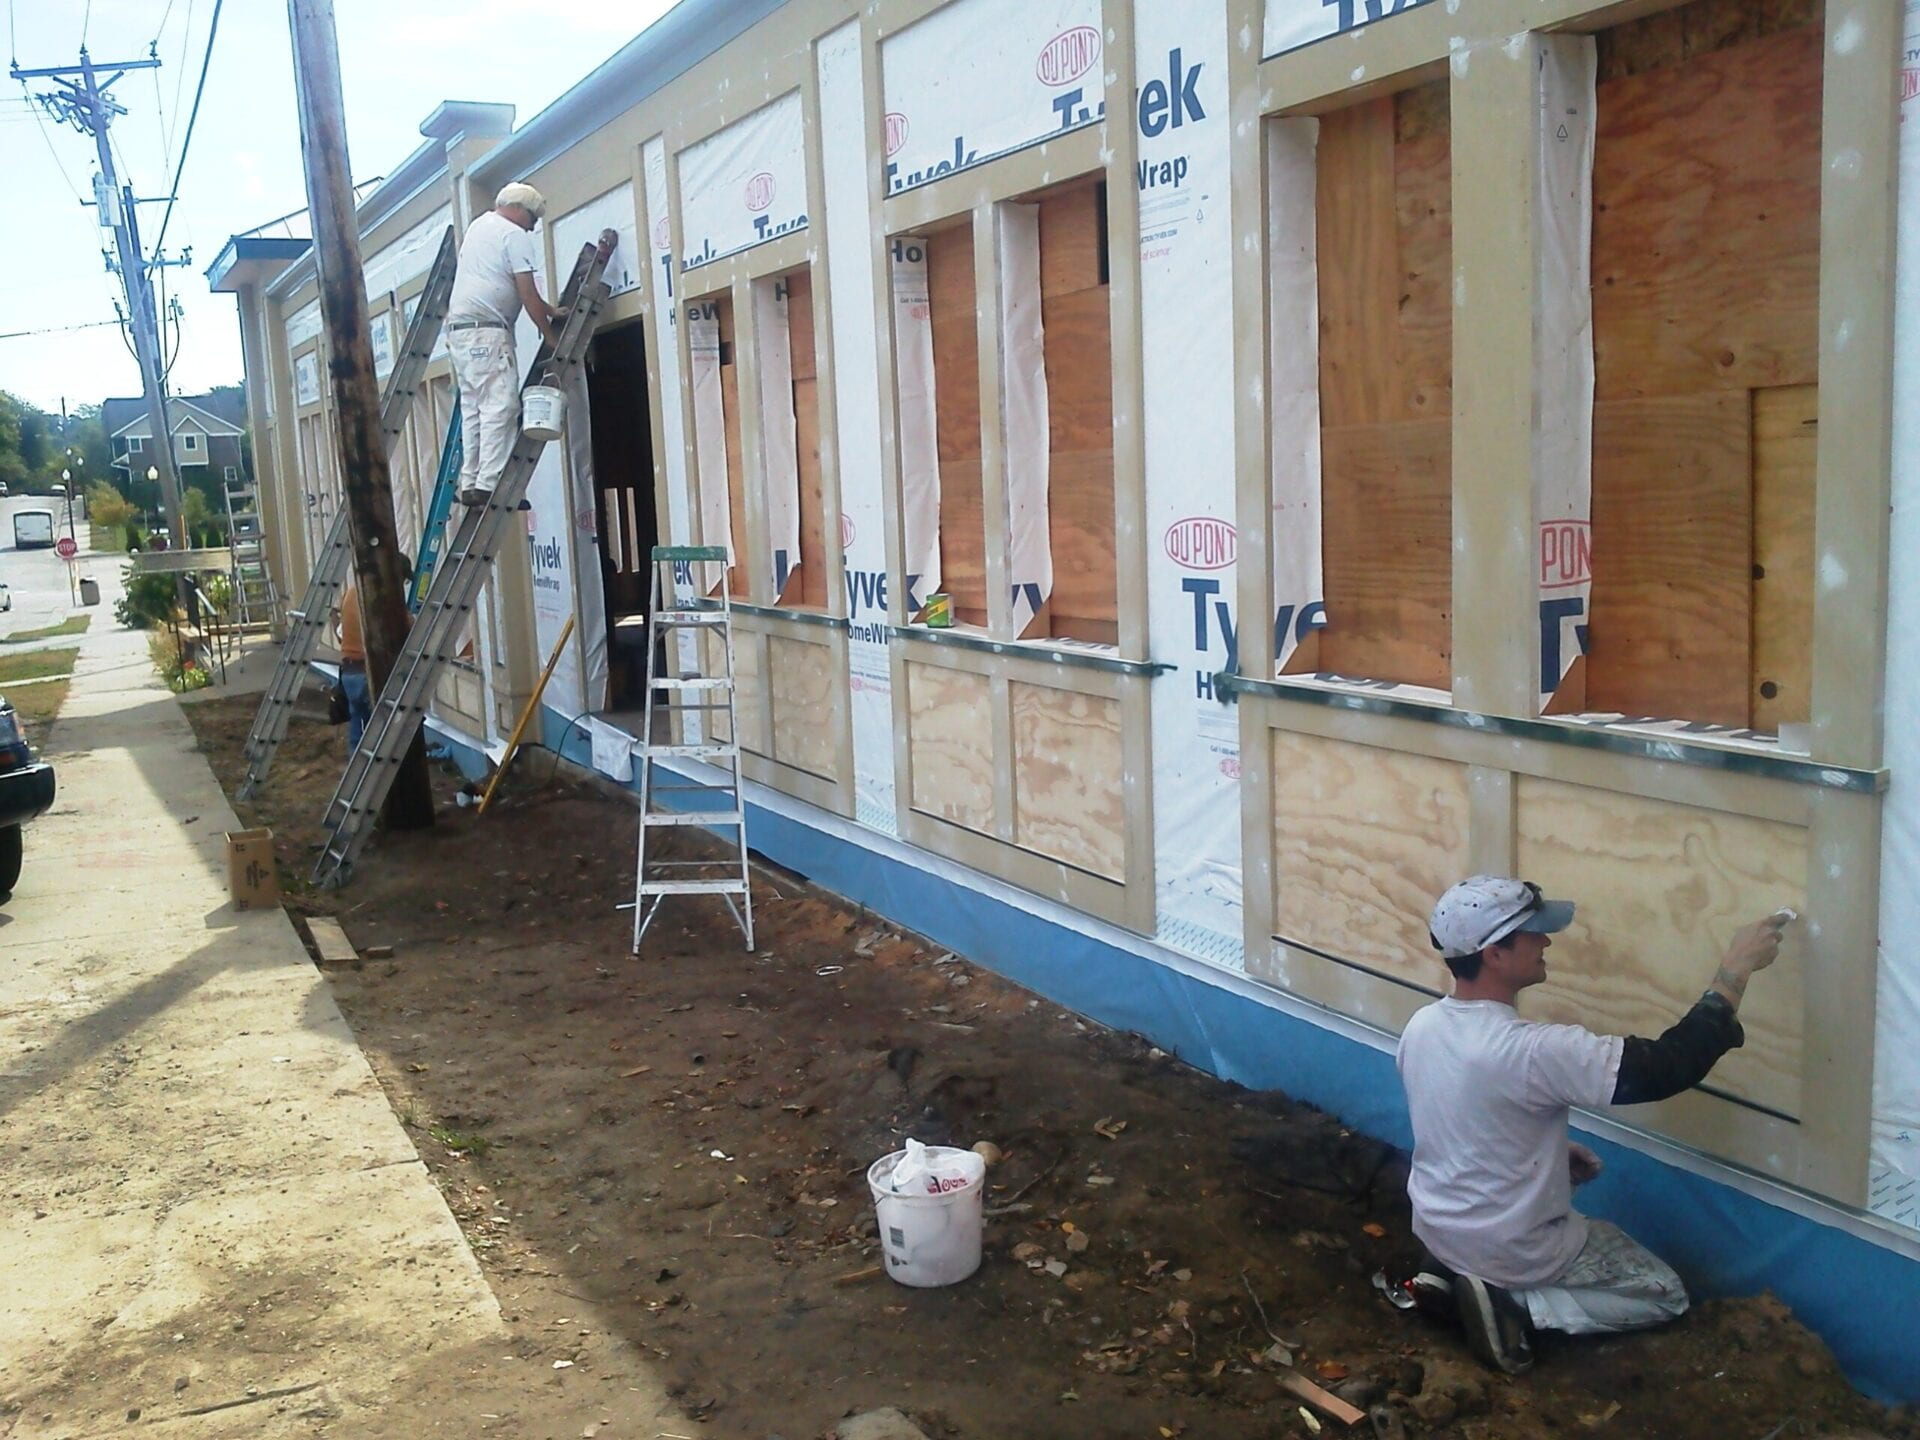 Exterior painting services for commercial properties in the Twin Cities and Lake Minnetonka area